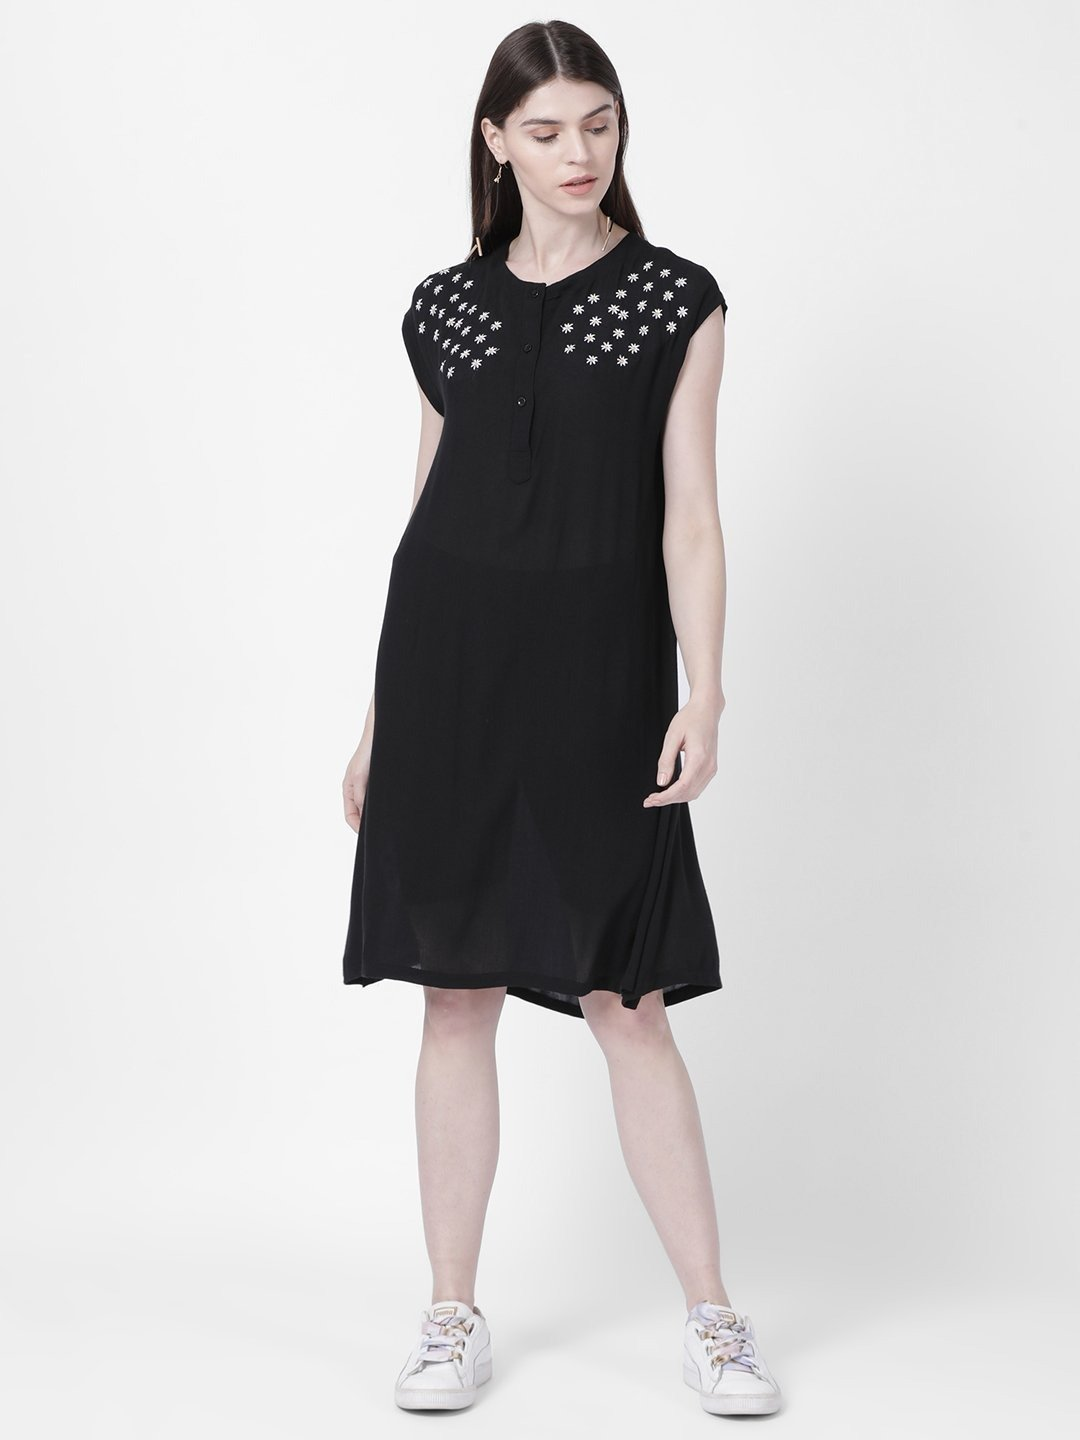 Embroidered Rayon Crepe Black Dress - Rossbelle